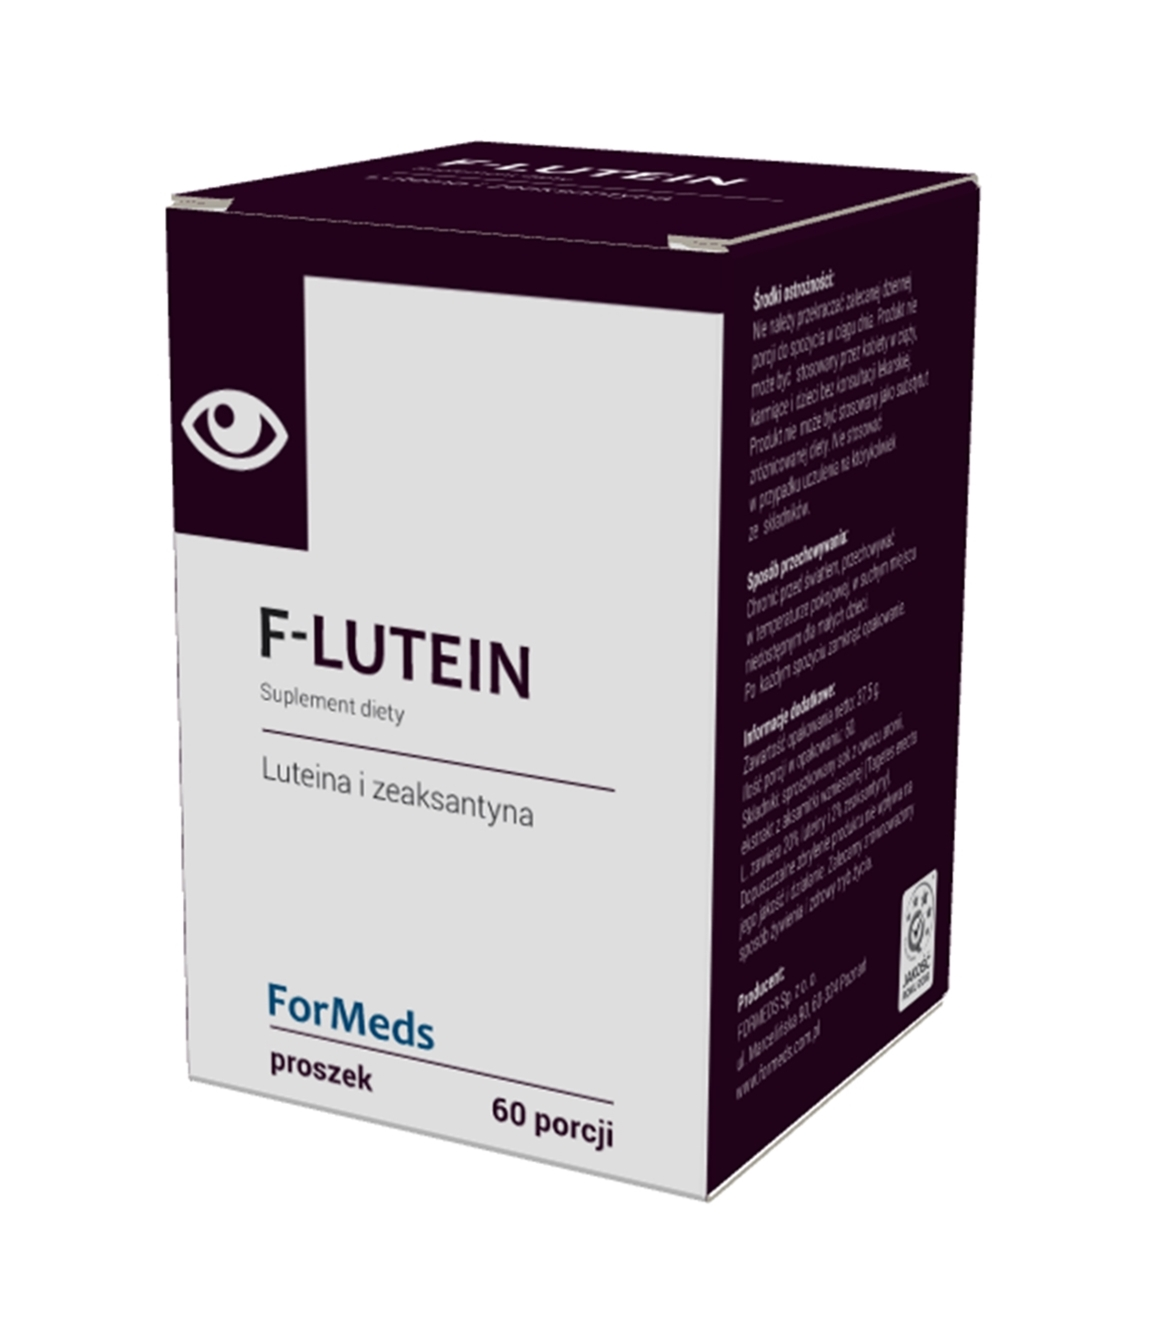 F-LUTEIN